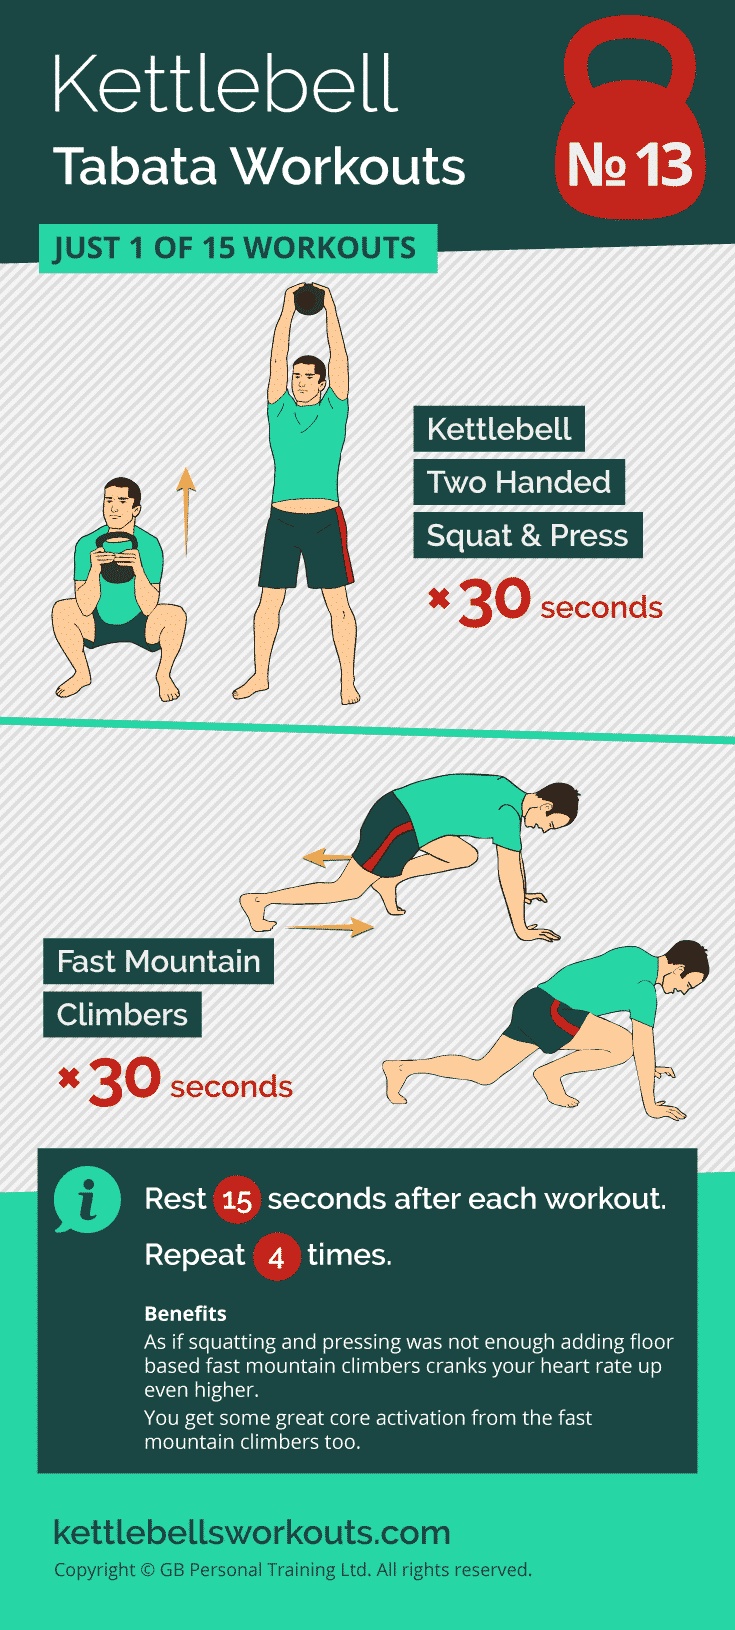 kettlebell tabata workout no.13